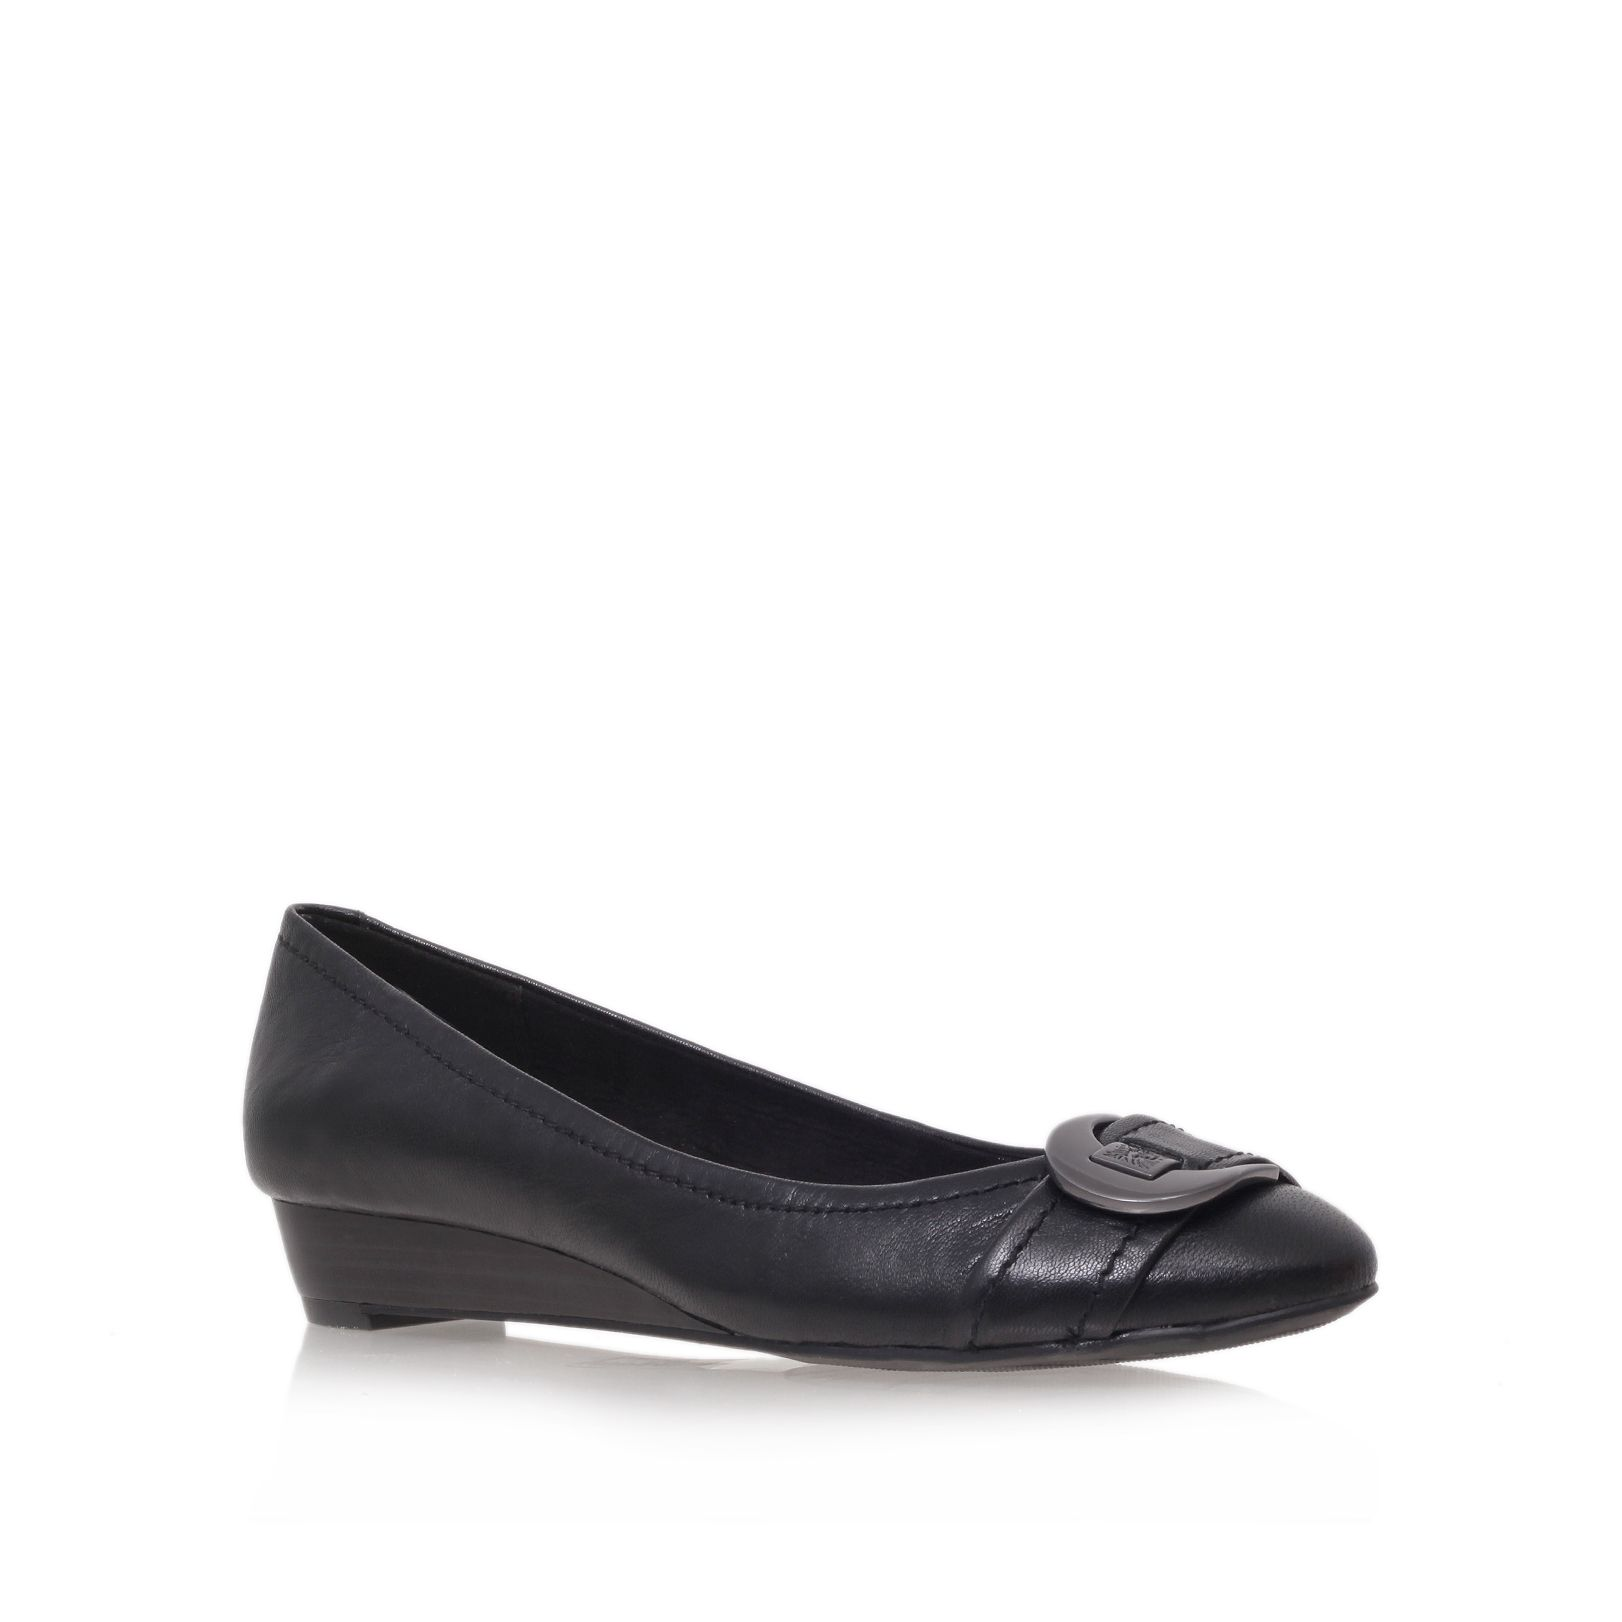 Ruthie low heel loafer shoes